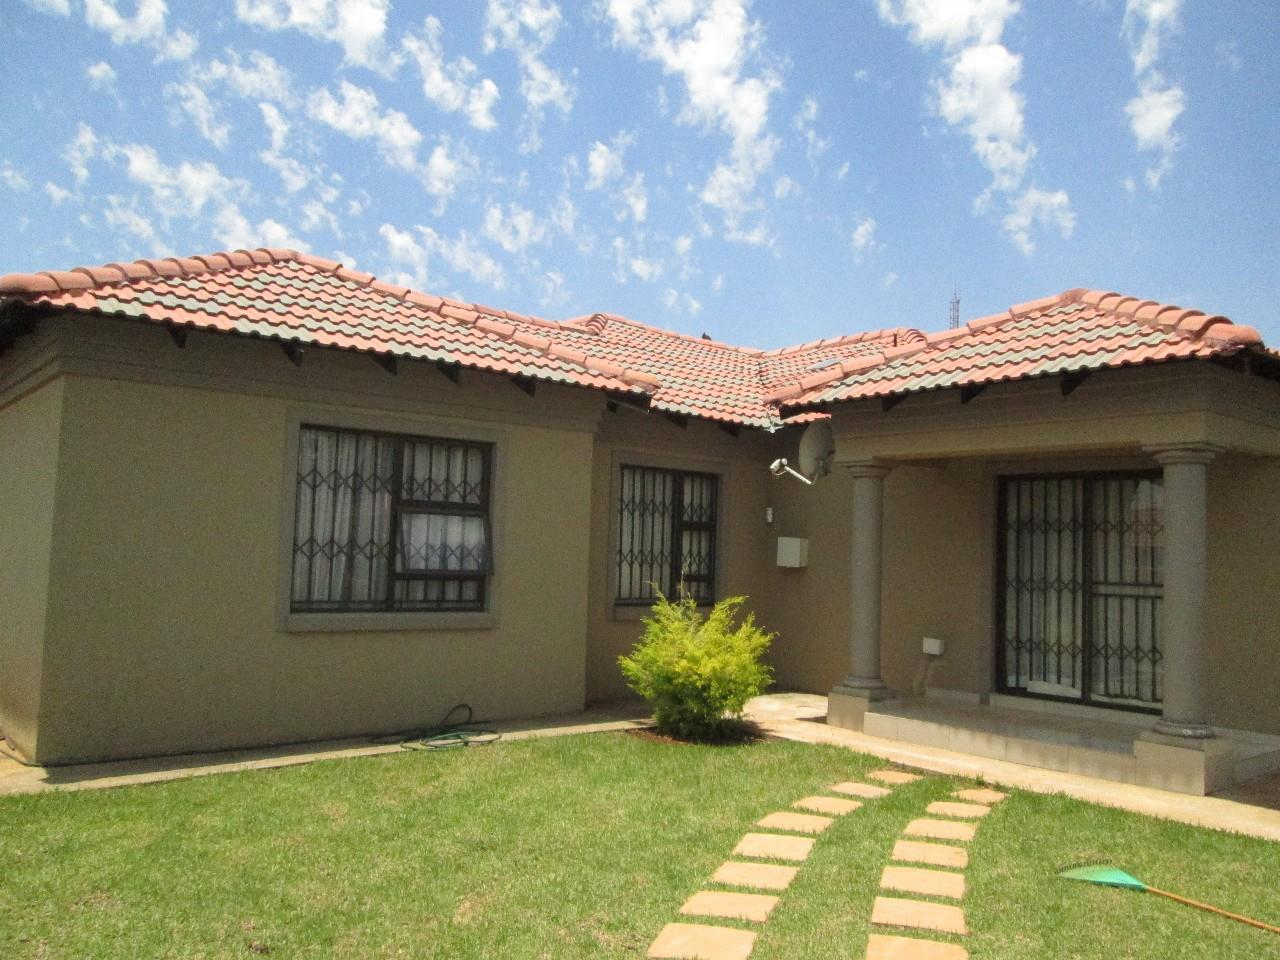 Hire Professional Letting Companies to Get the Best Accommodation